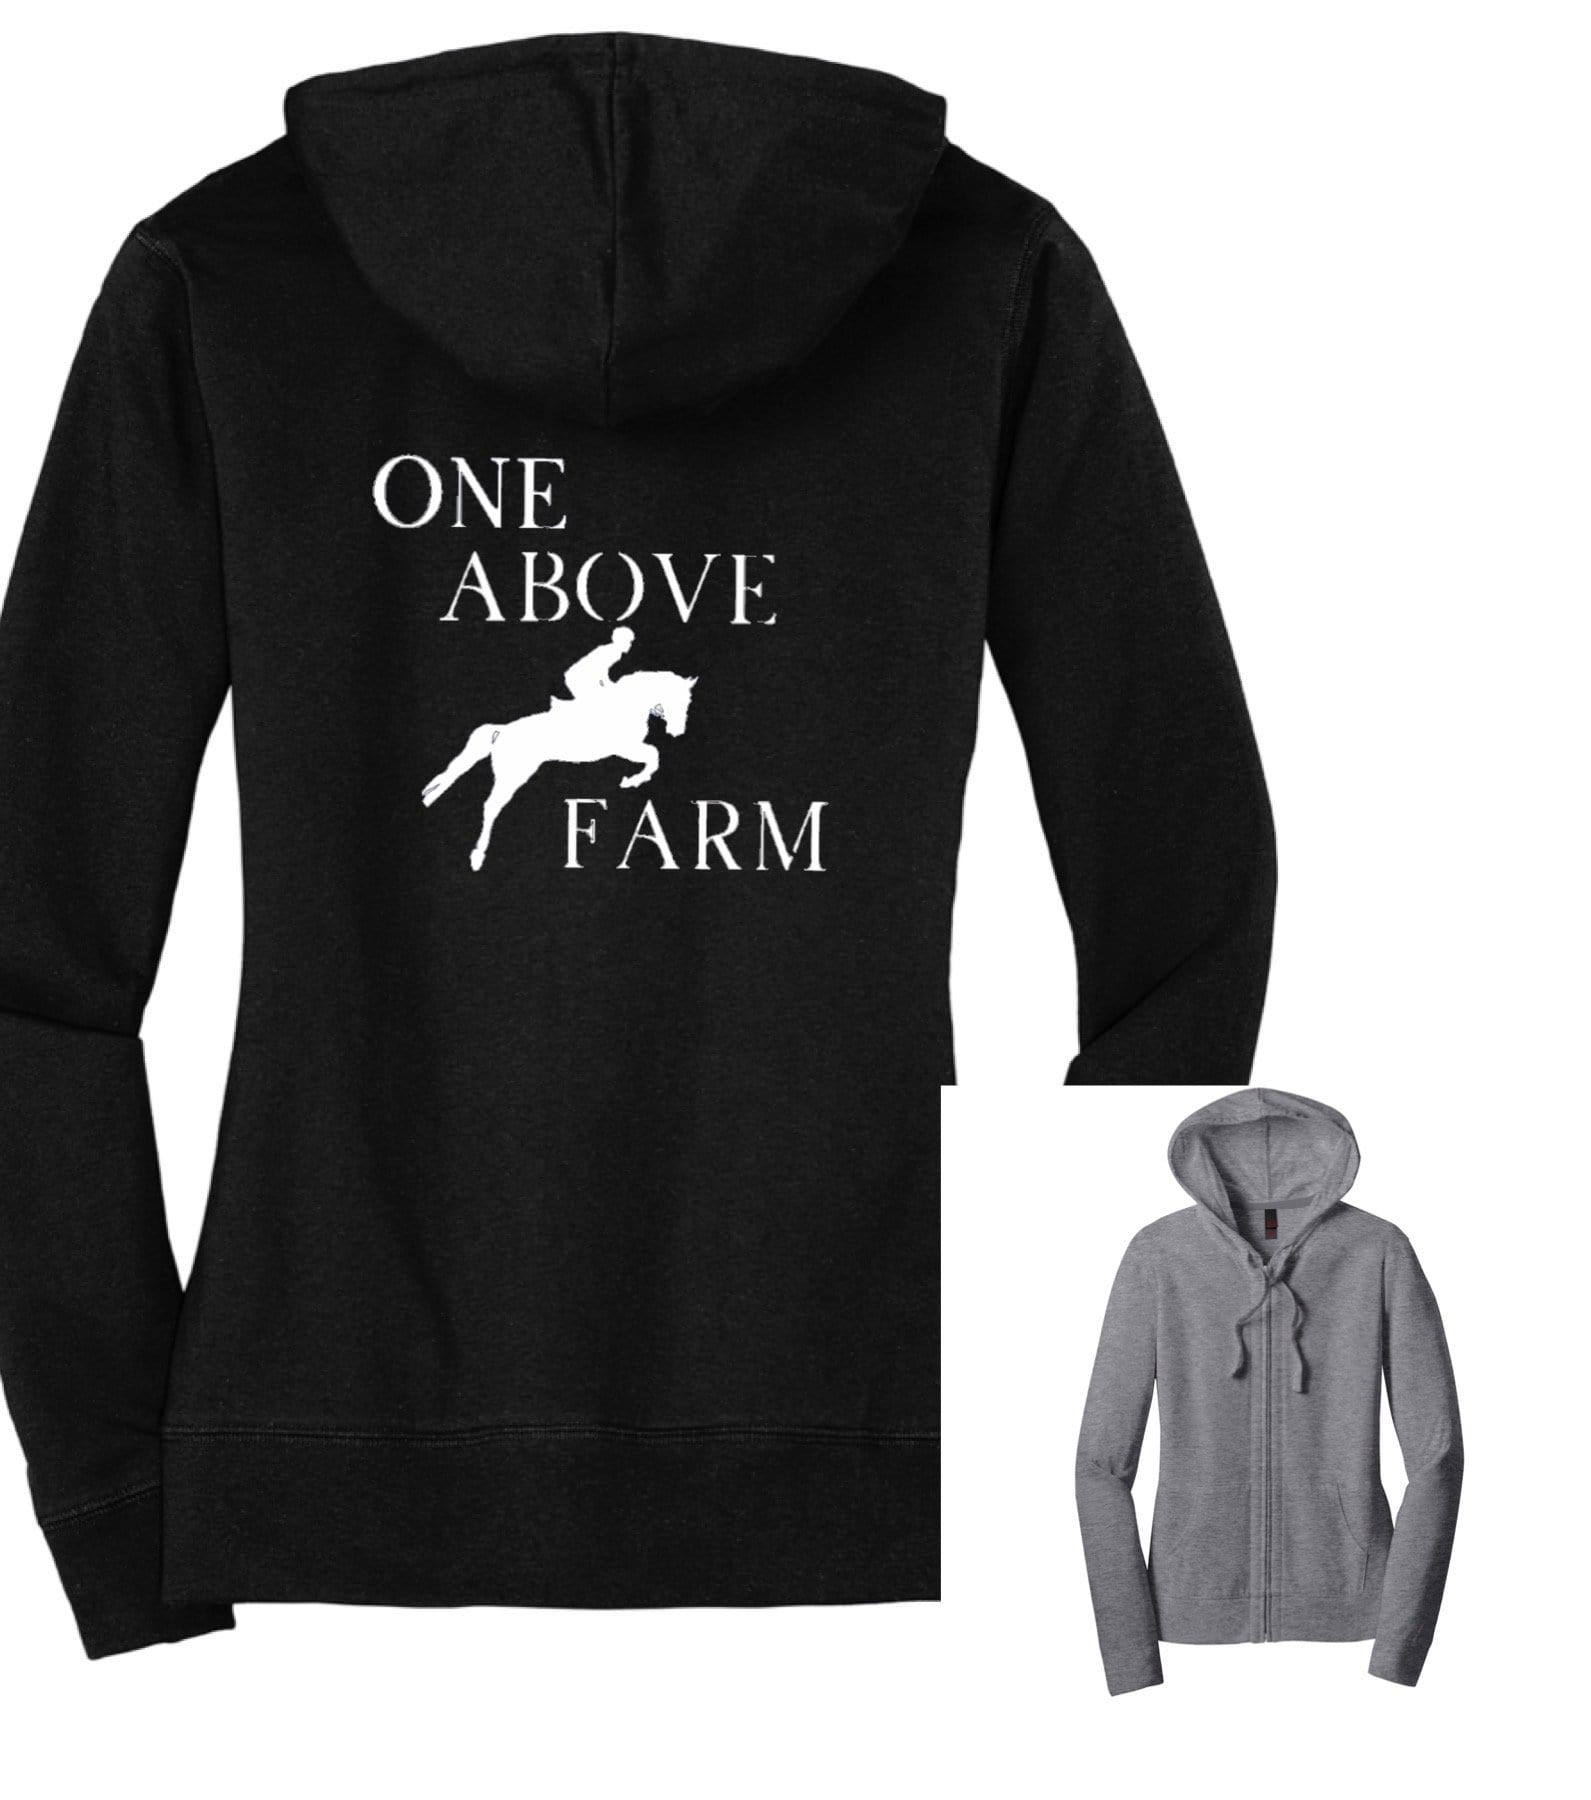 Equestrian Team Apparel Custom Team Shirts One Above Farm Zip Up Hoodie equestrian team apparel online tack store mobile tack store custom farm apparel custom show stable clothing equestrian lifestyle horse show clothing riding clothes horses equestrian tack store